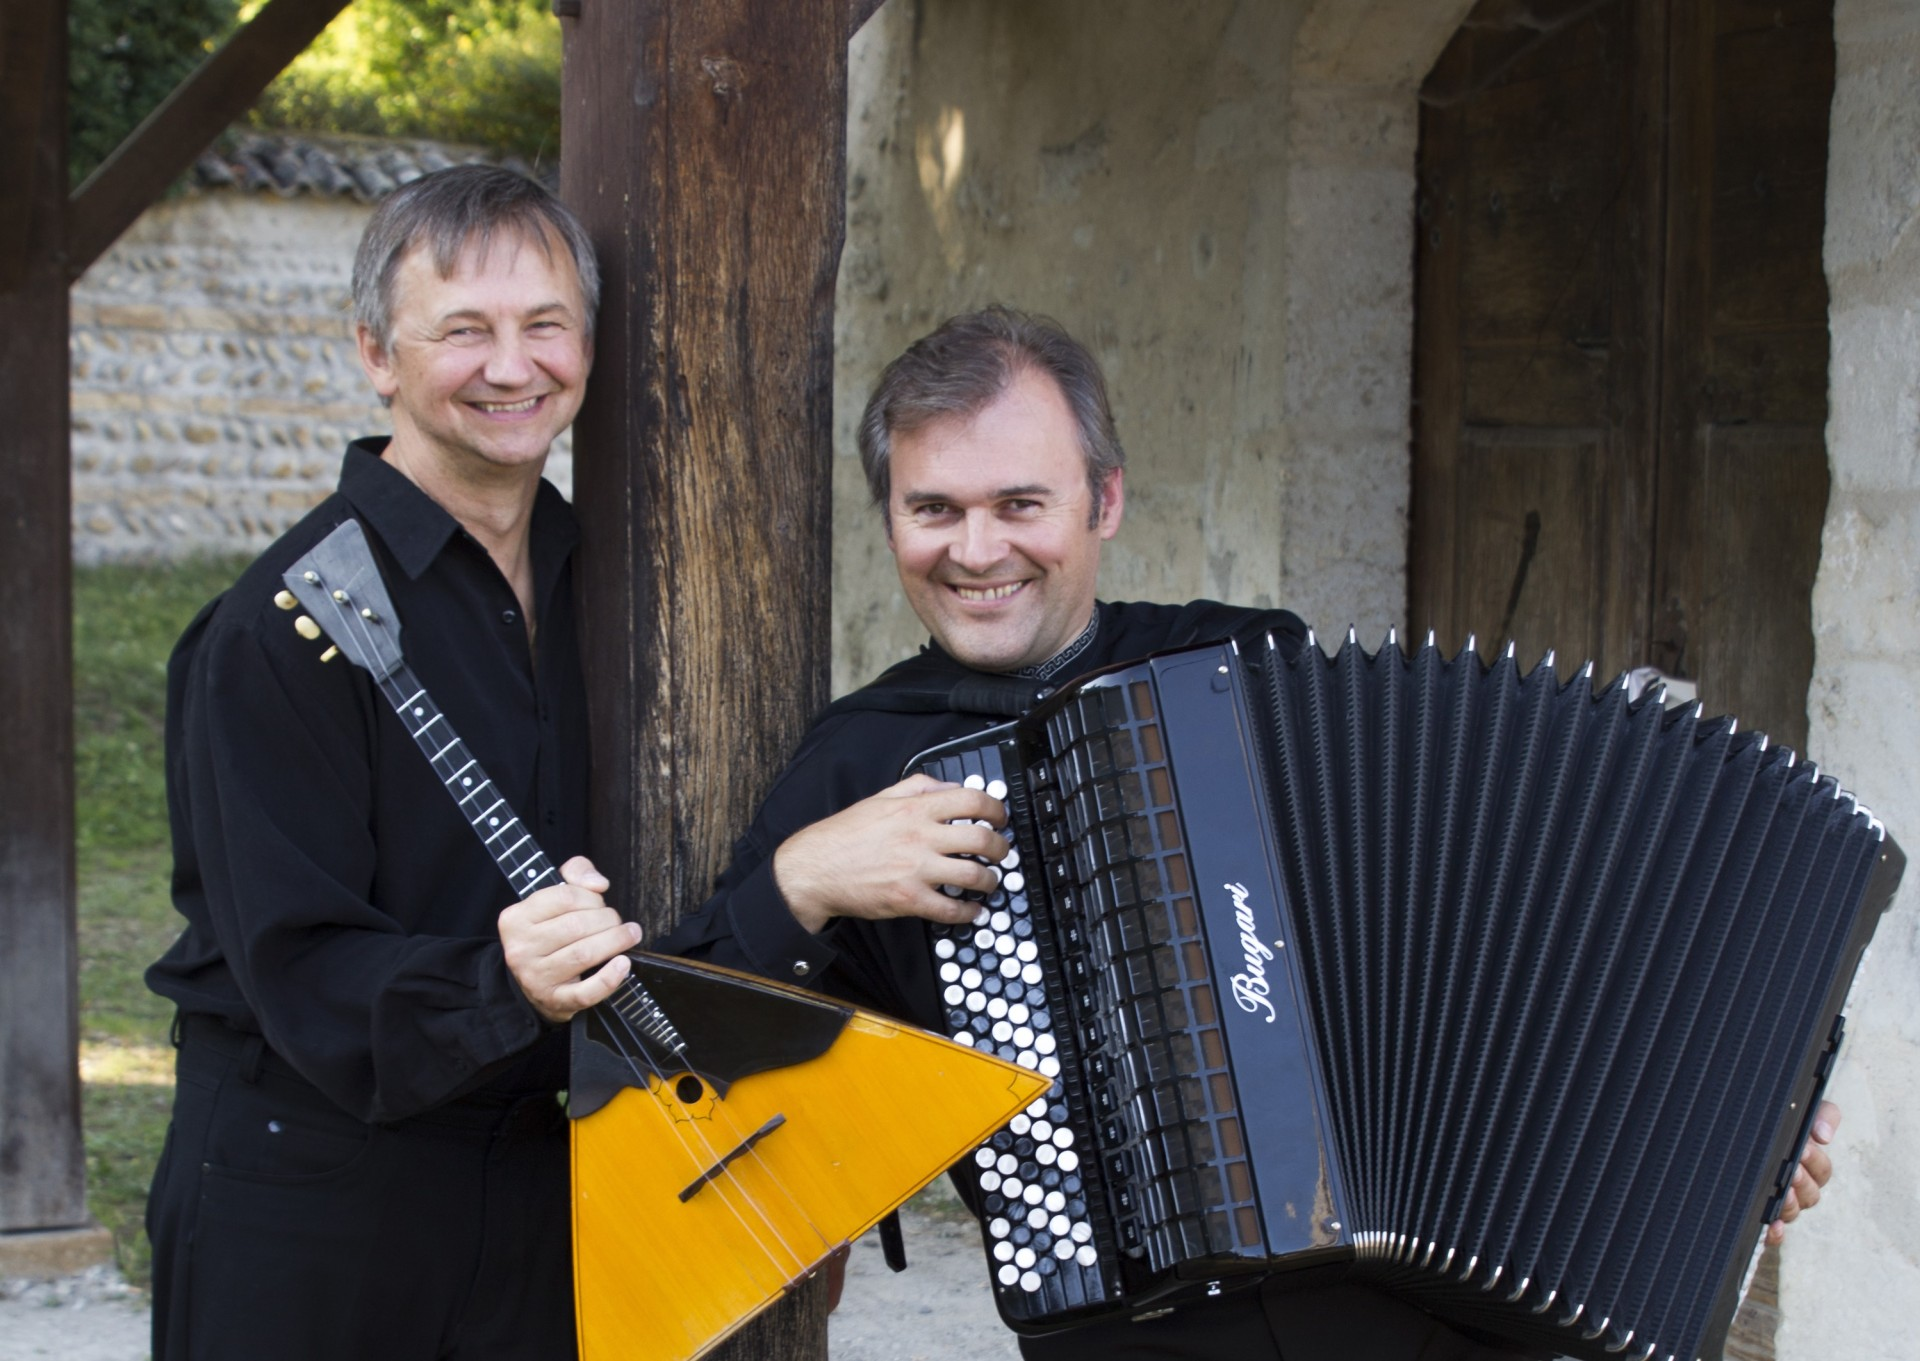 Duo Accordéon Balalaïka